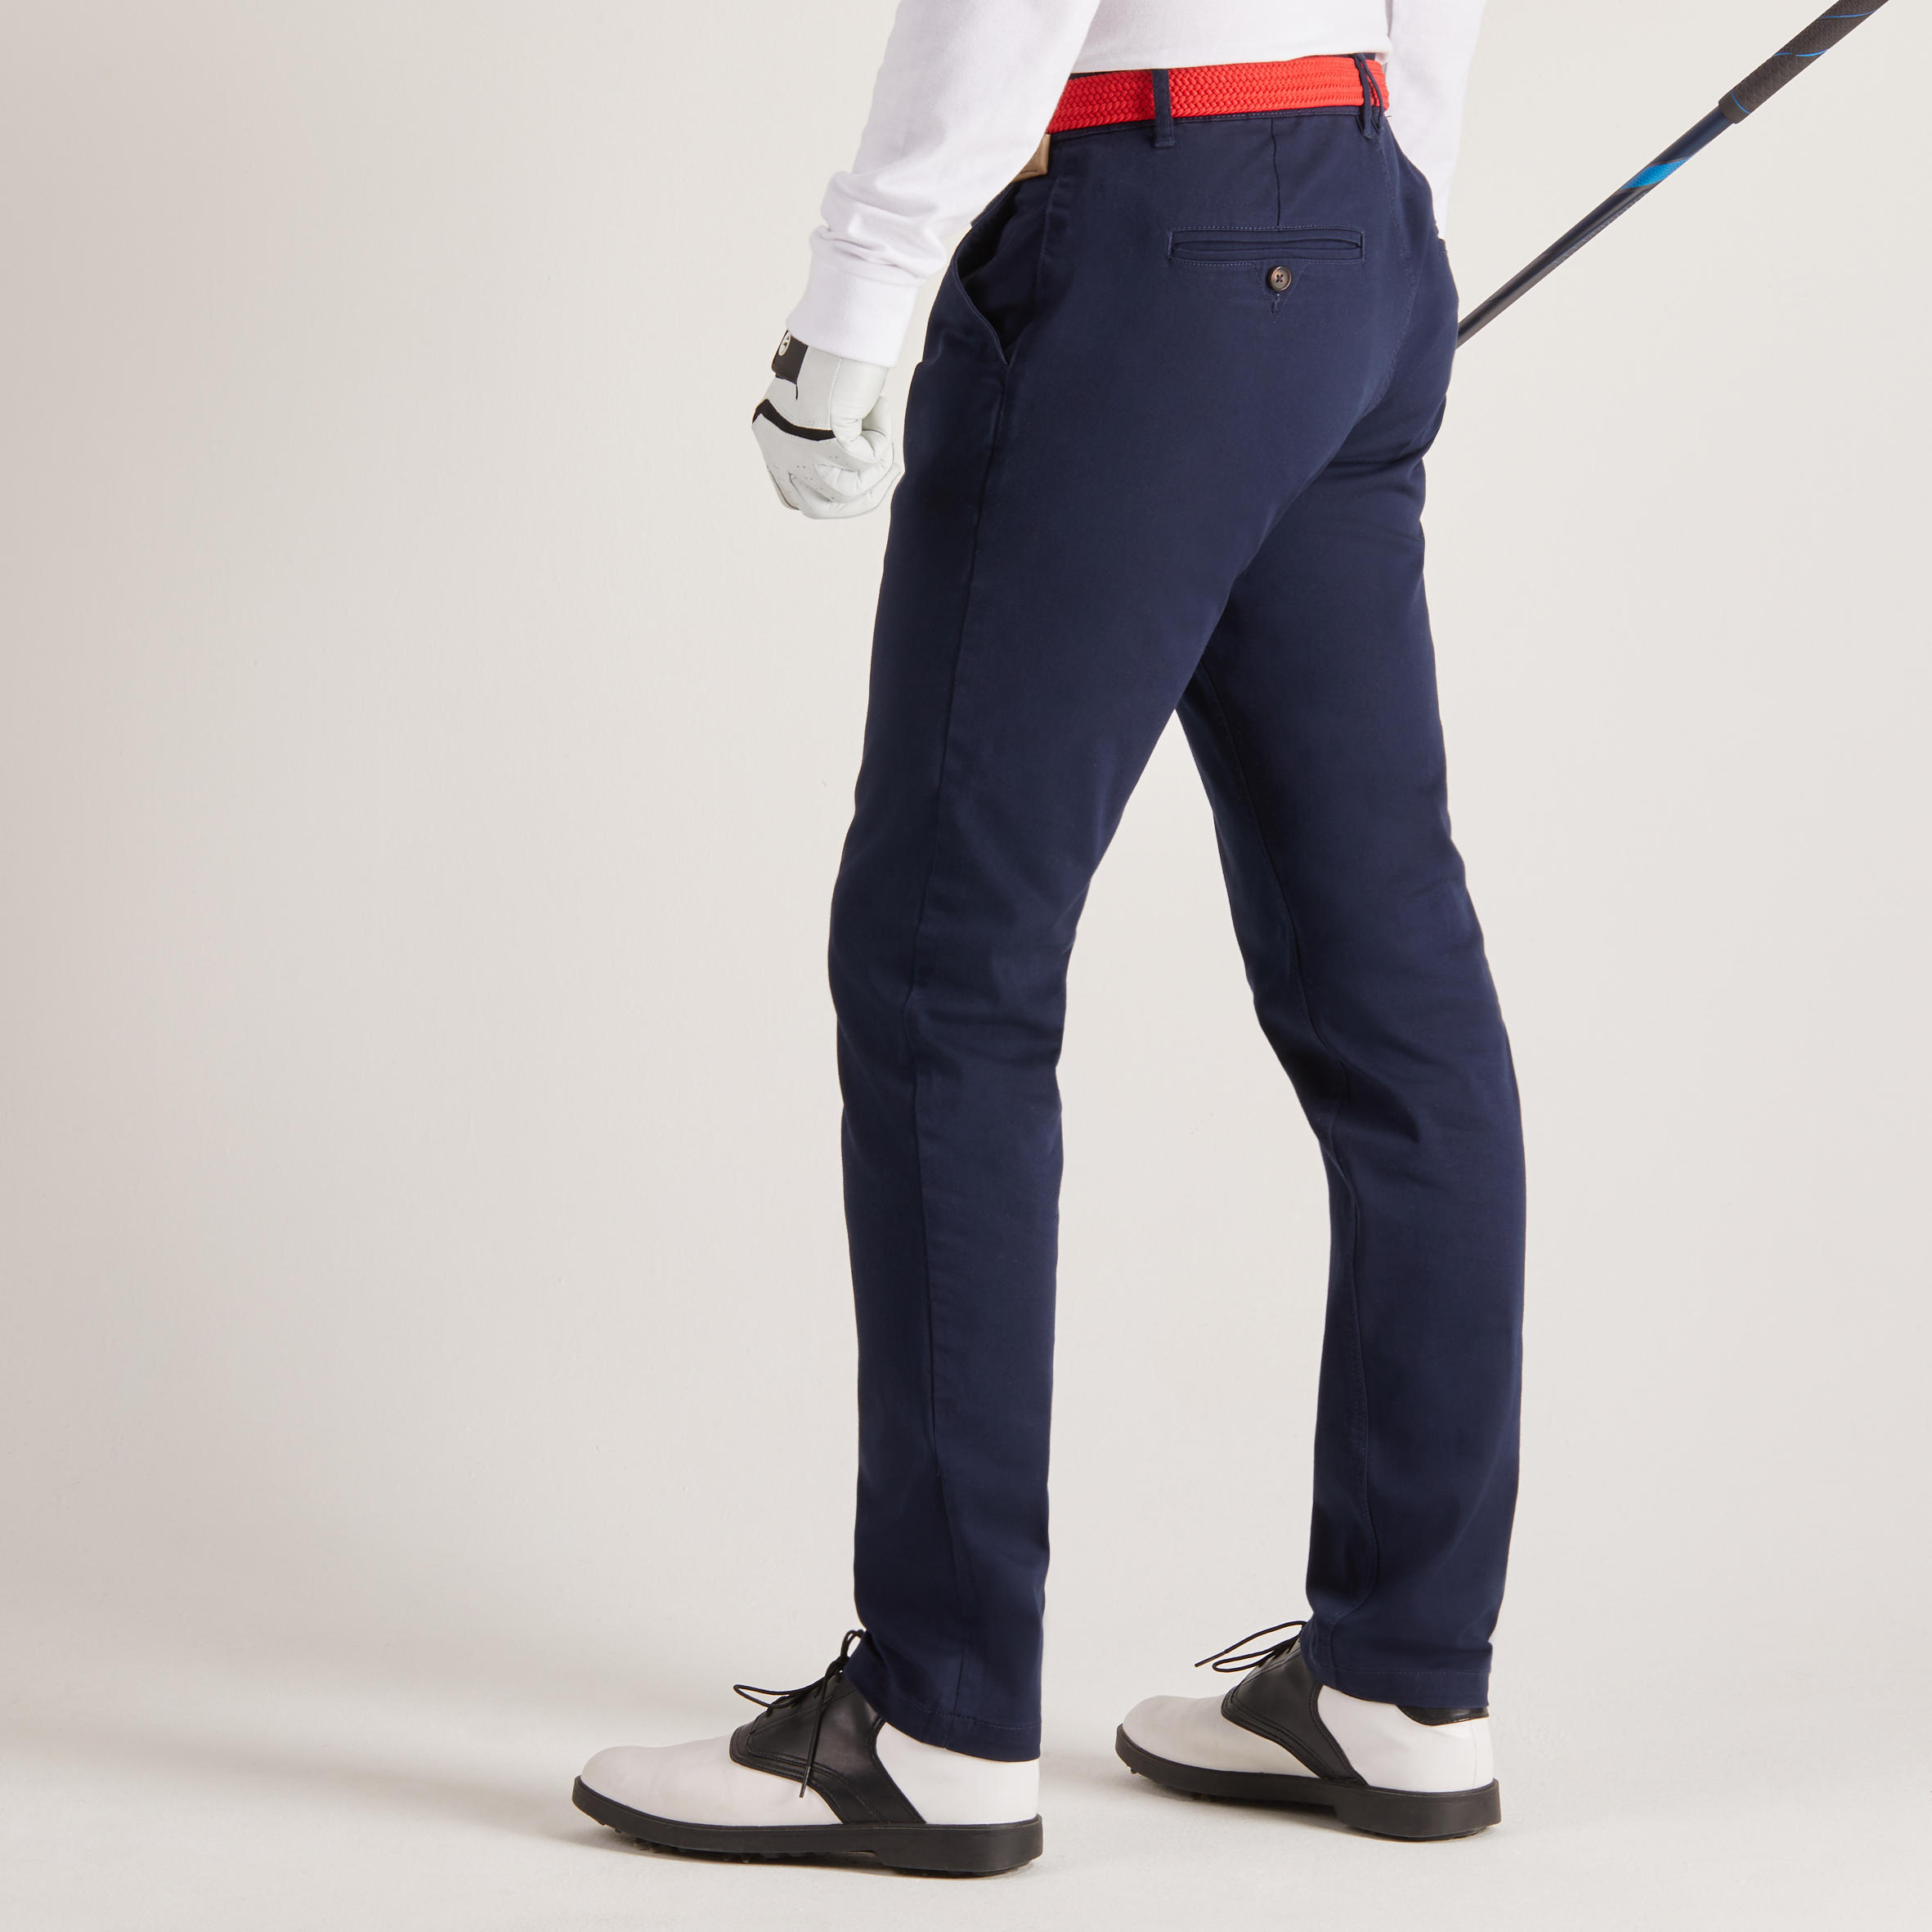 MEN'S MILD WEATHER GOLF TROUSERS NAVY